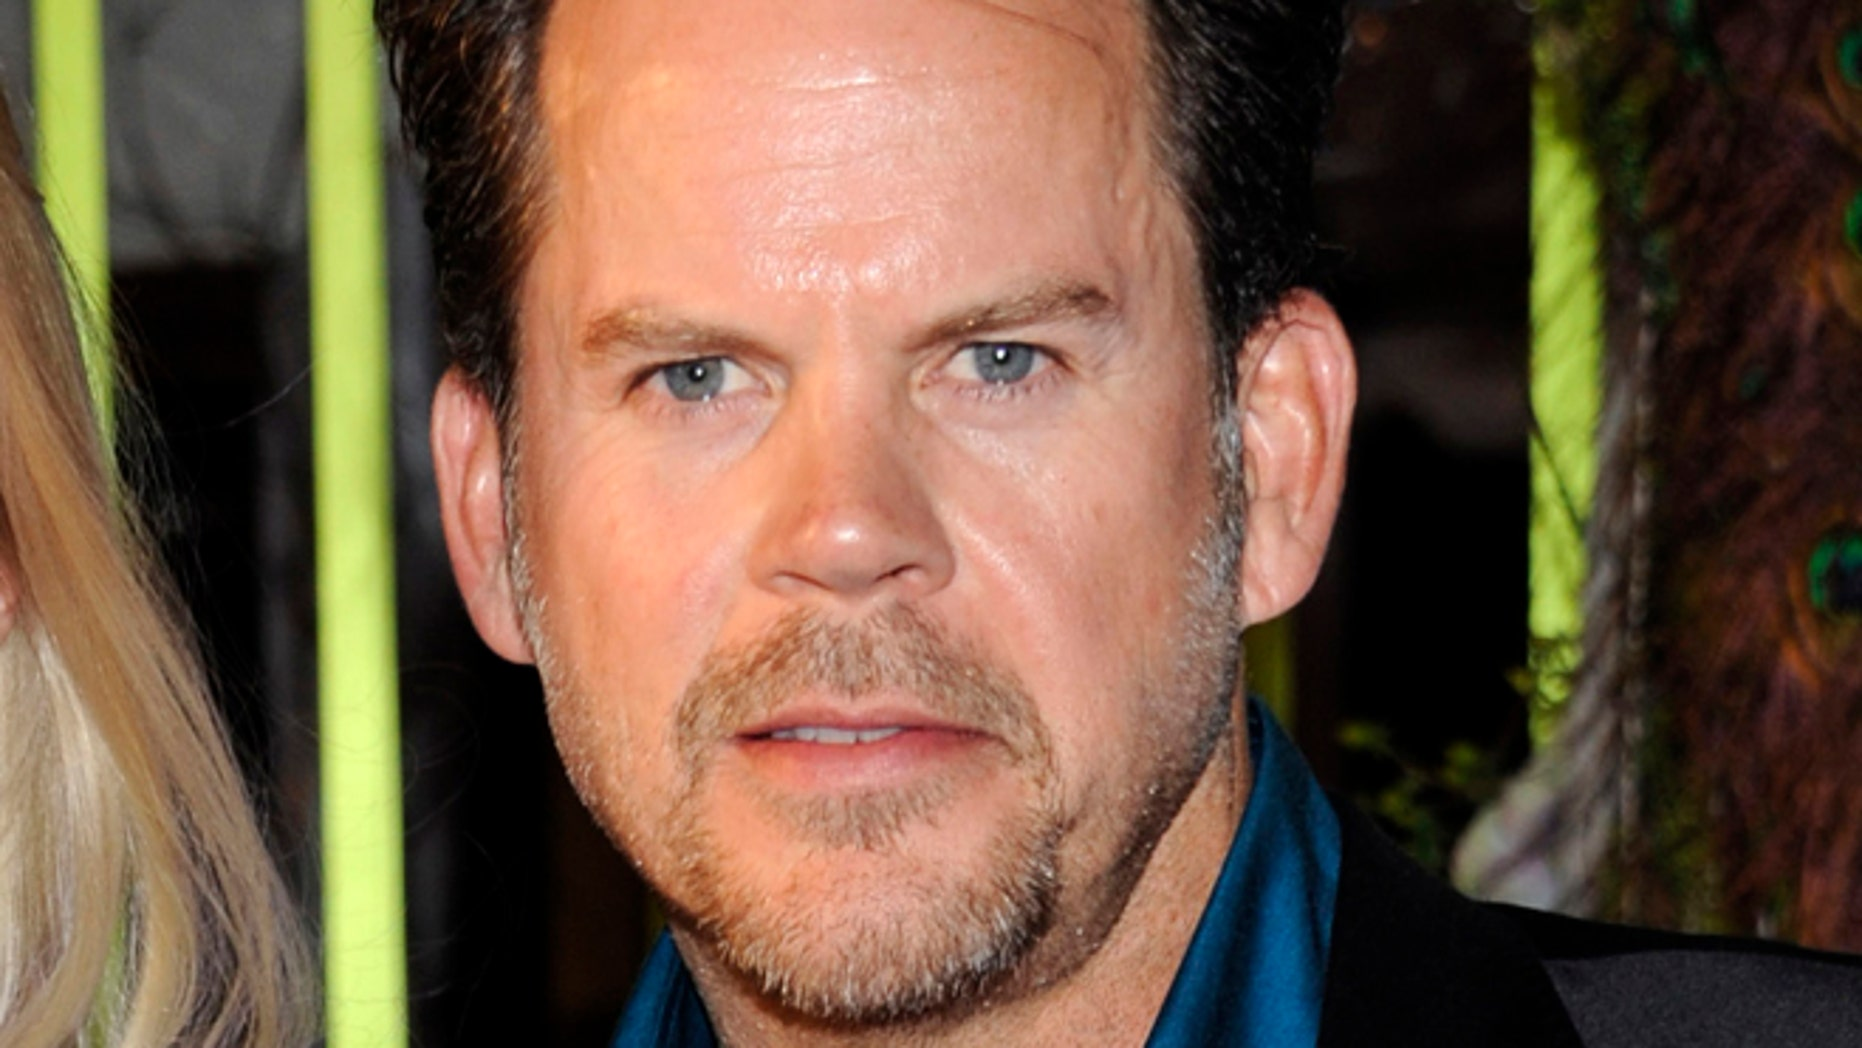 Country singer Gary Allan attends the 59th Annual BMI Country Awards in Nashville.